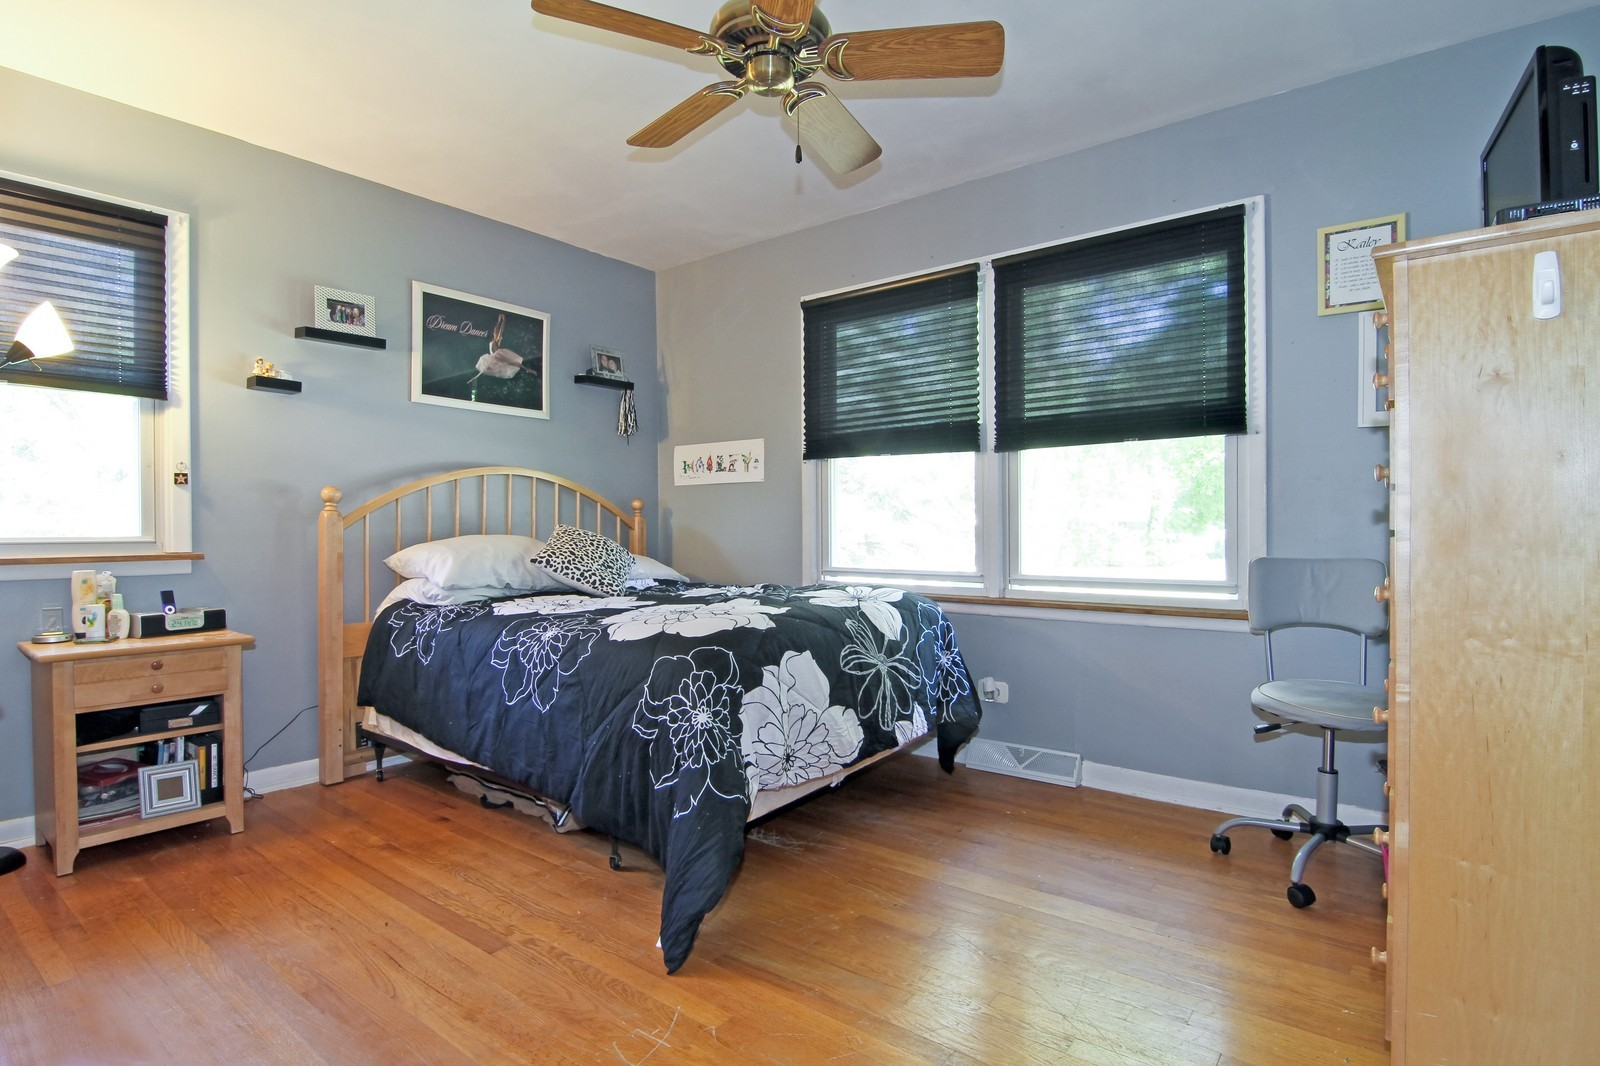 Real Estate Photography - 632 S. Lalonde Ave, Lombard, IL, 60148 - Bedroom